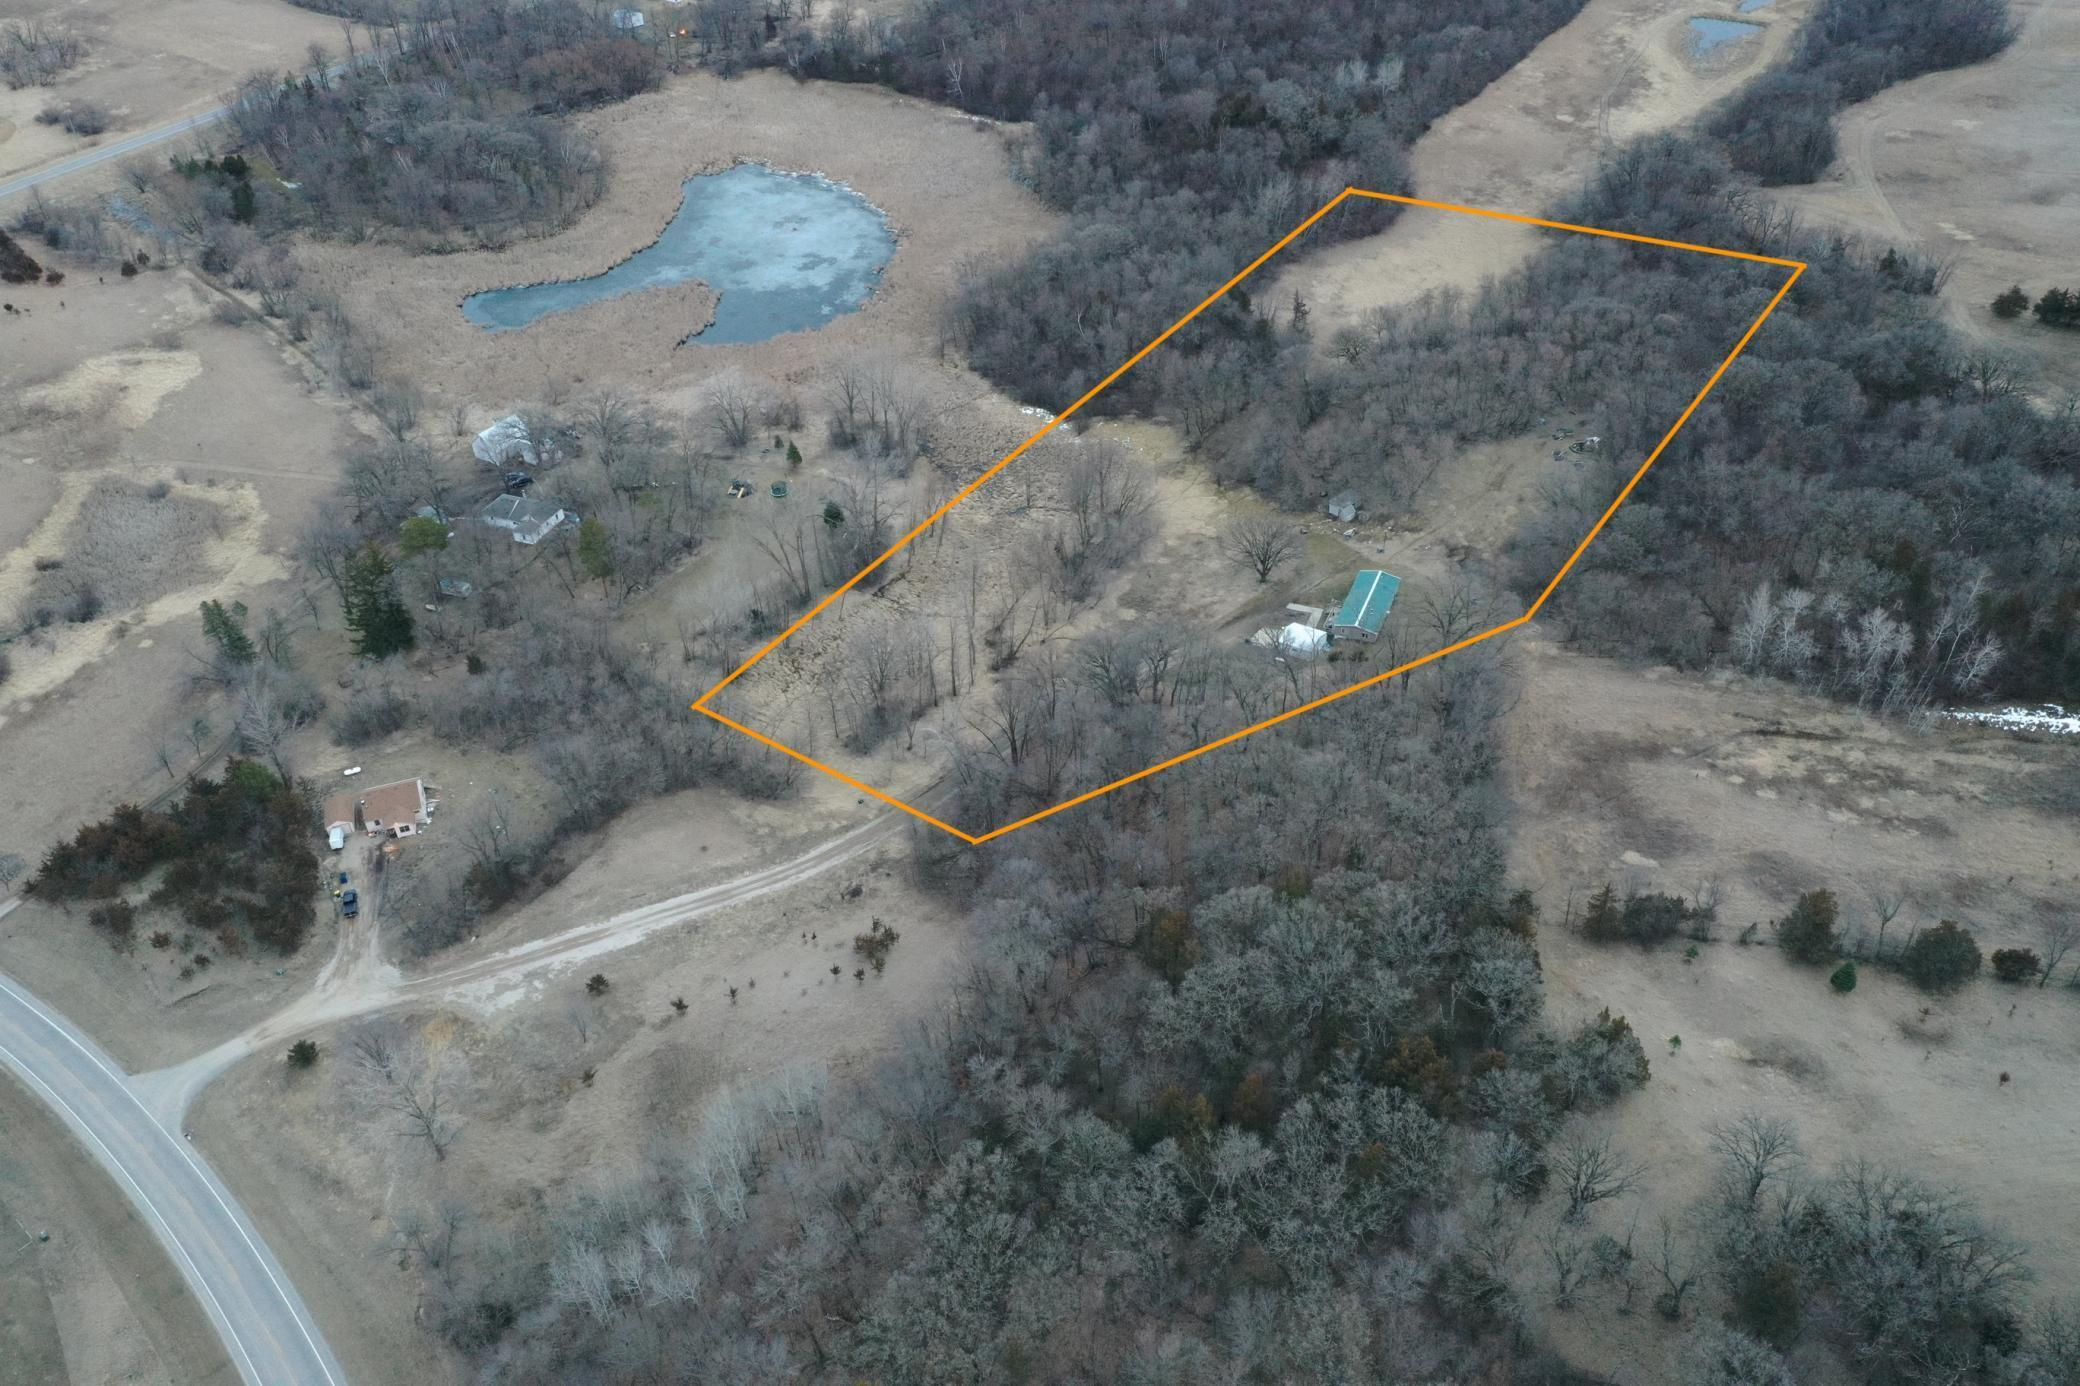 Glacial Ridge Acres along The old Irving road. Long Driveway to your private place in the county. Build or nestle into the OLD doublewide. You will love the topography out here. Nice Sunrise views over a wetland. Sufficient hunting with successful Turkey and Trophy Whitetail harvested from this parcel. Tenant occupied 24 hours to show. Seller intends to complete a 1031 exchange as a result of this sale.